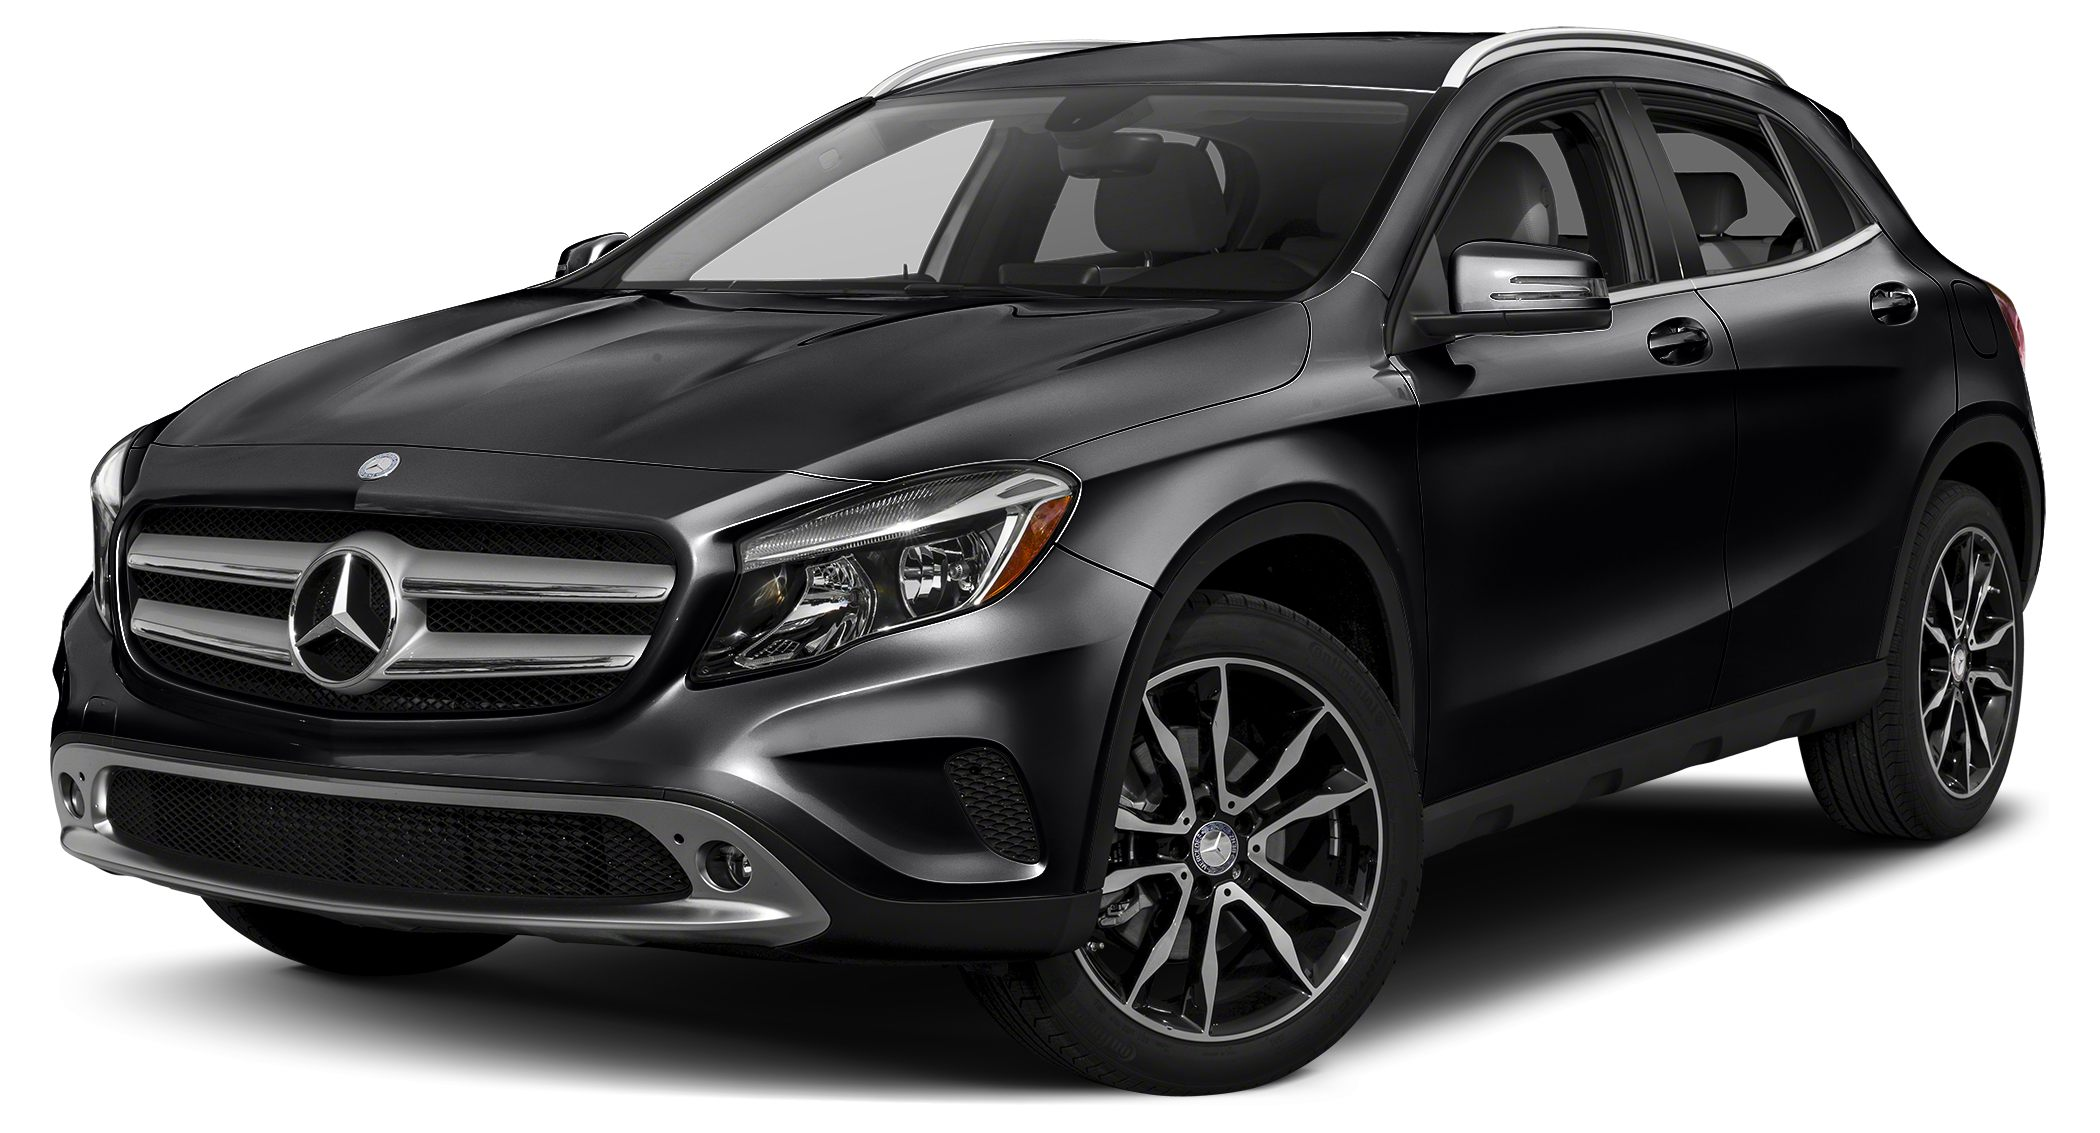 2016 MERCEDES GLA-Class GLA250 Miles 10Color Night Black Stock L1285 VIN WDCTG4EB0GJ198023